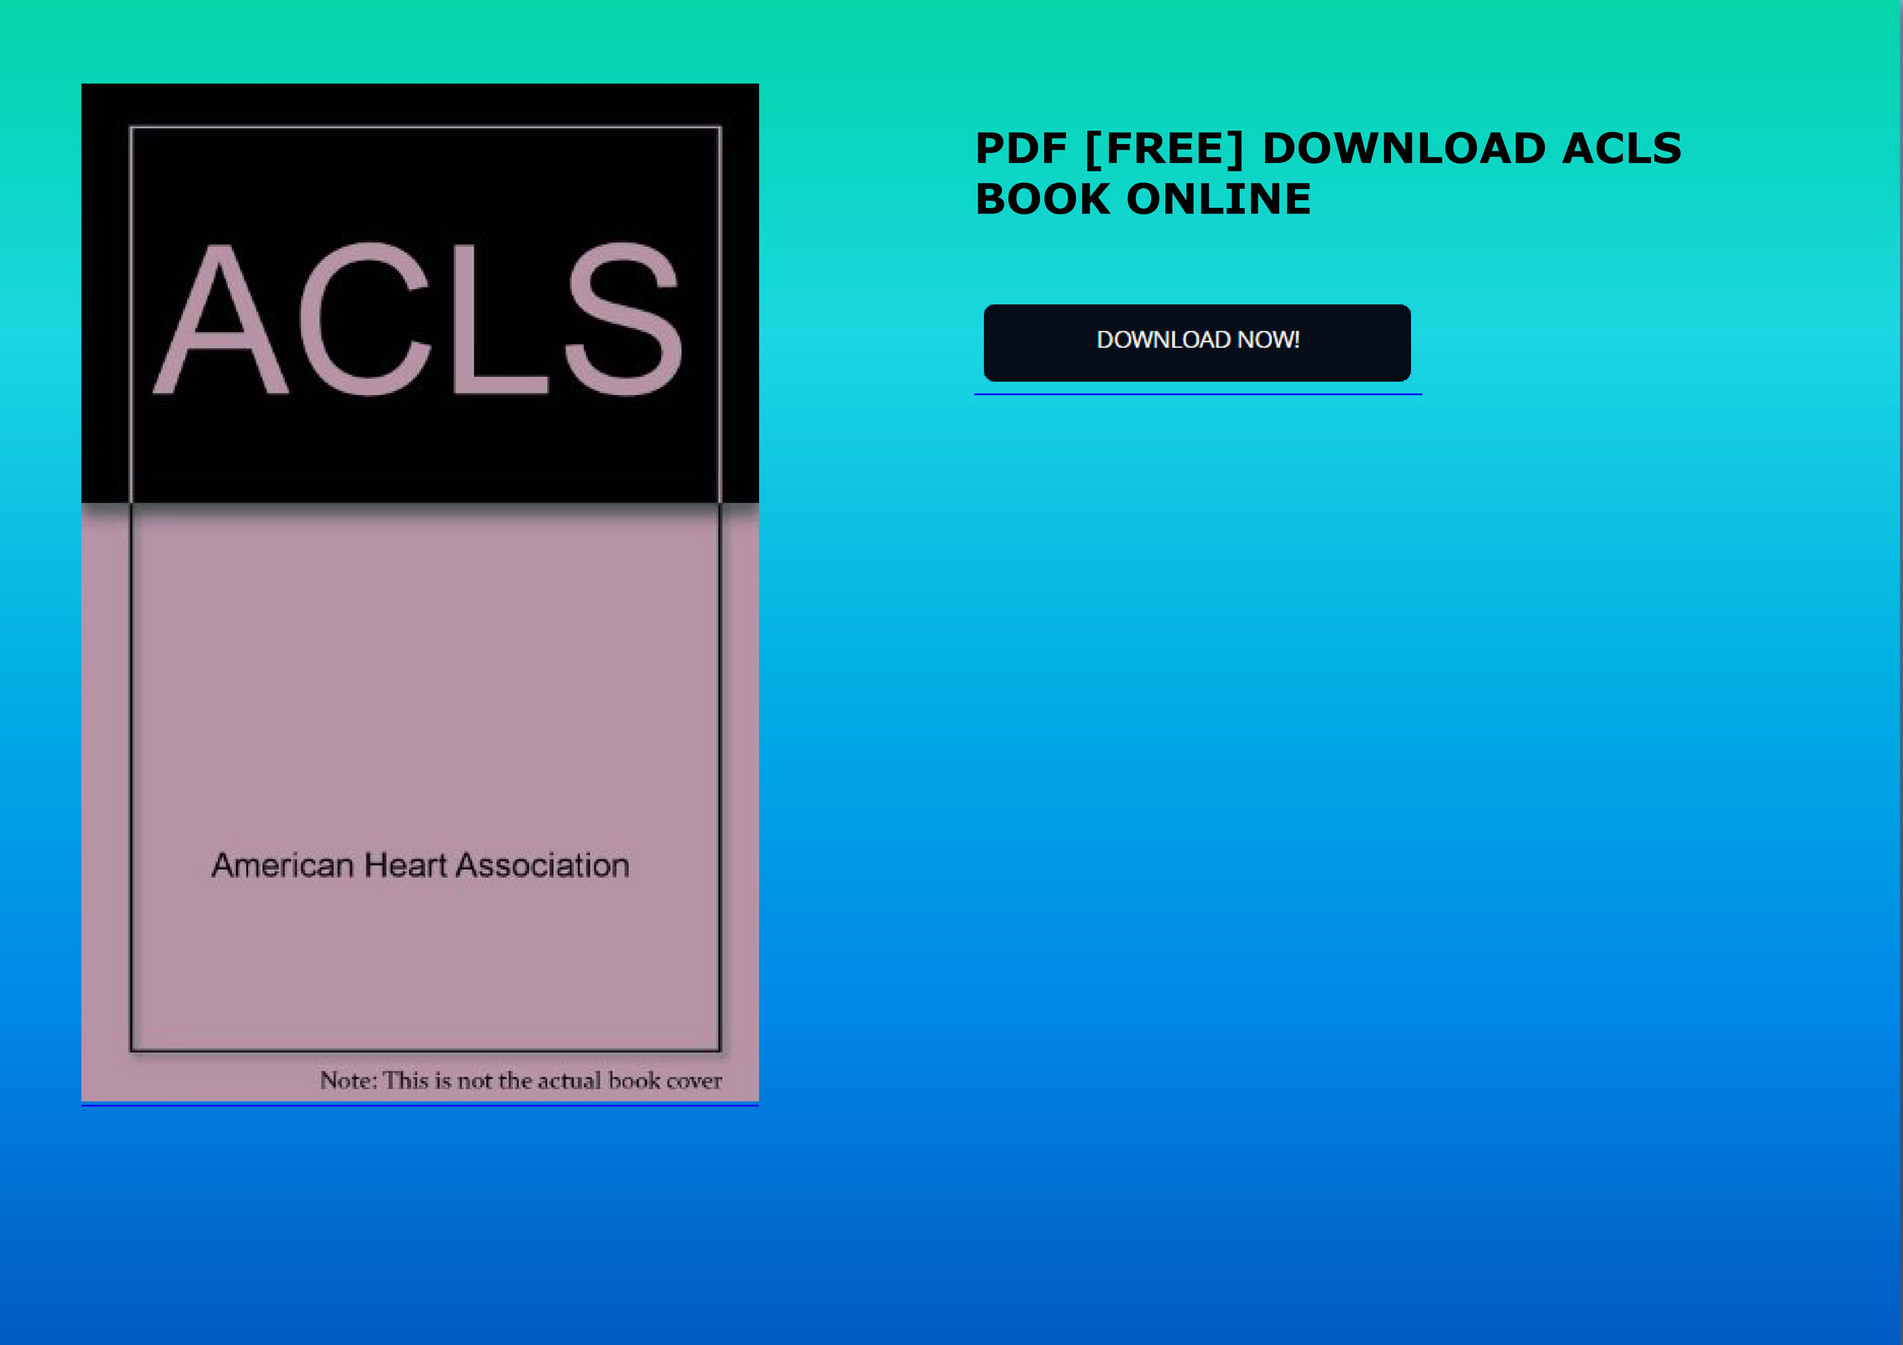 Acls Book Pdf Free Download